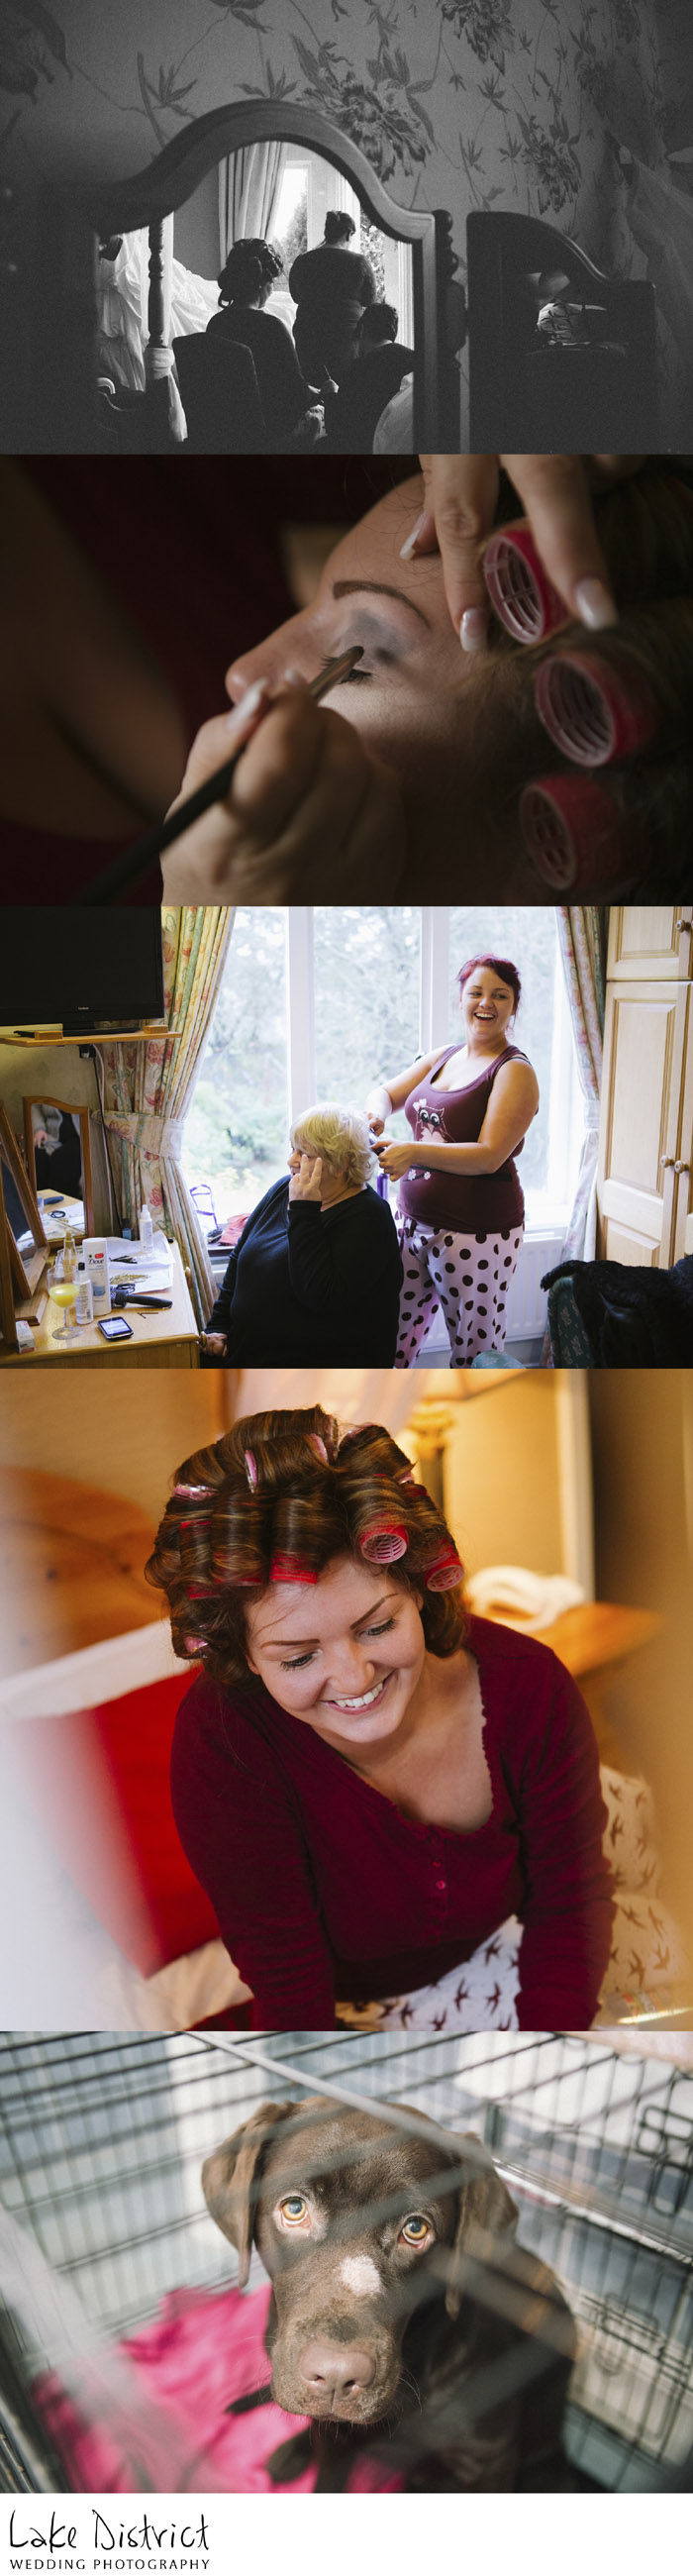 cumbria and lake district wedding photography